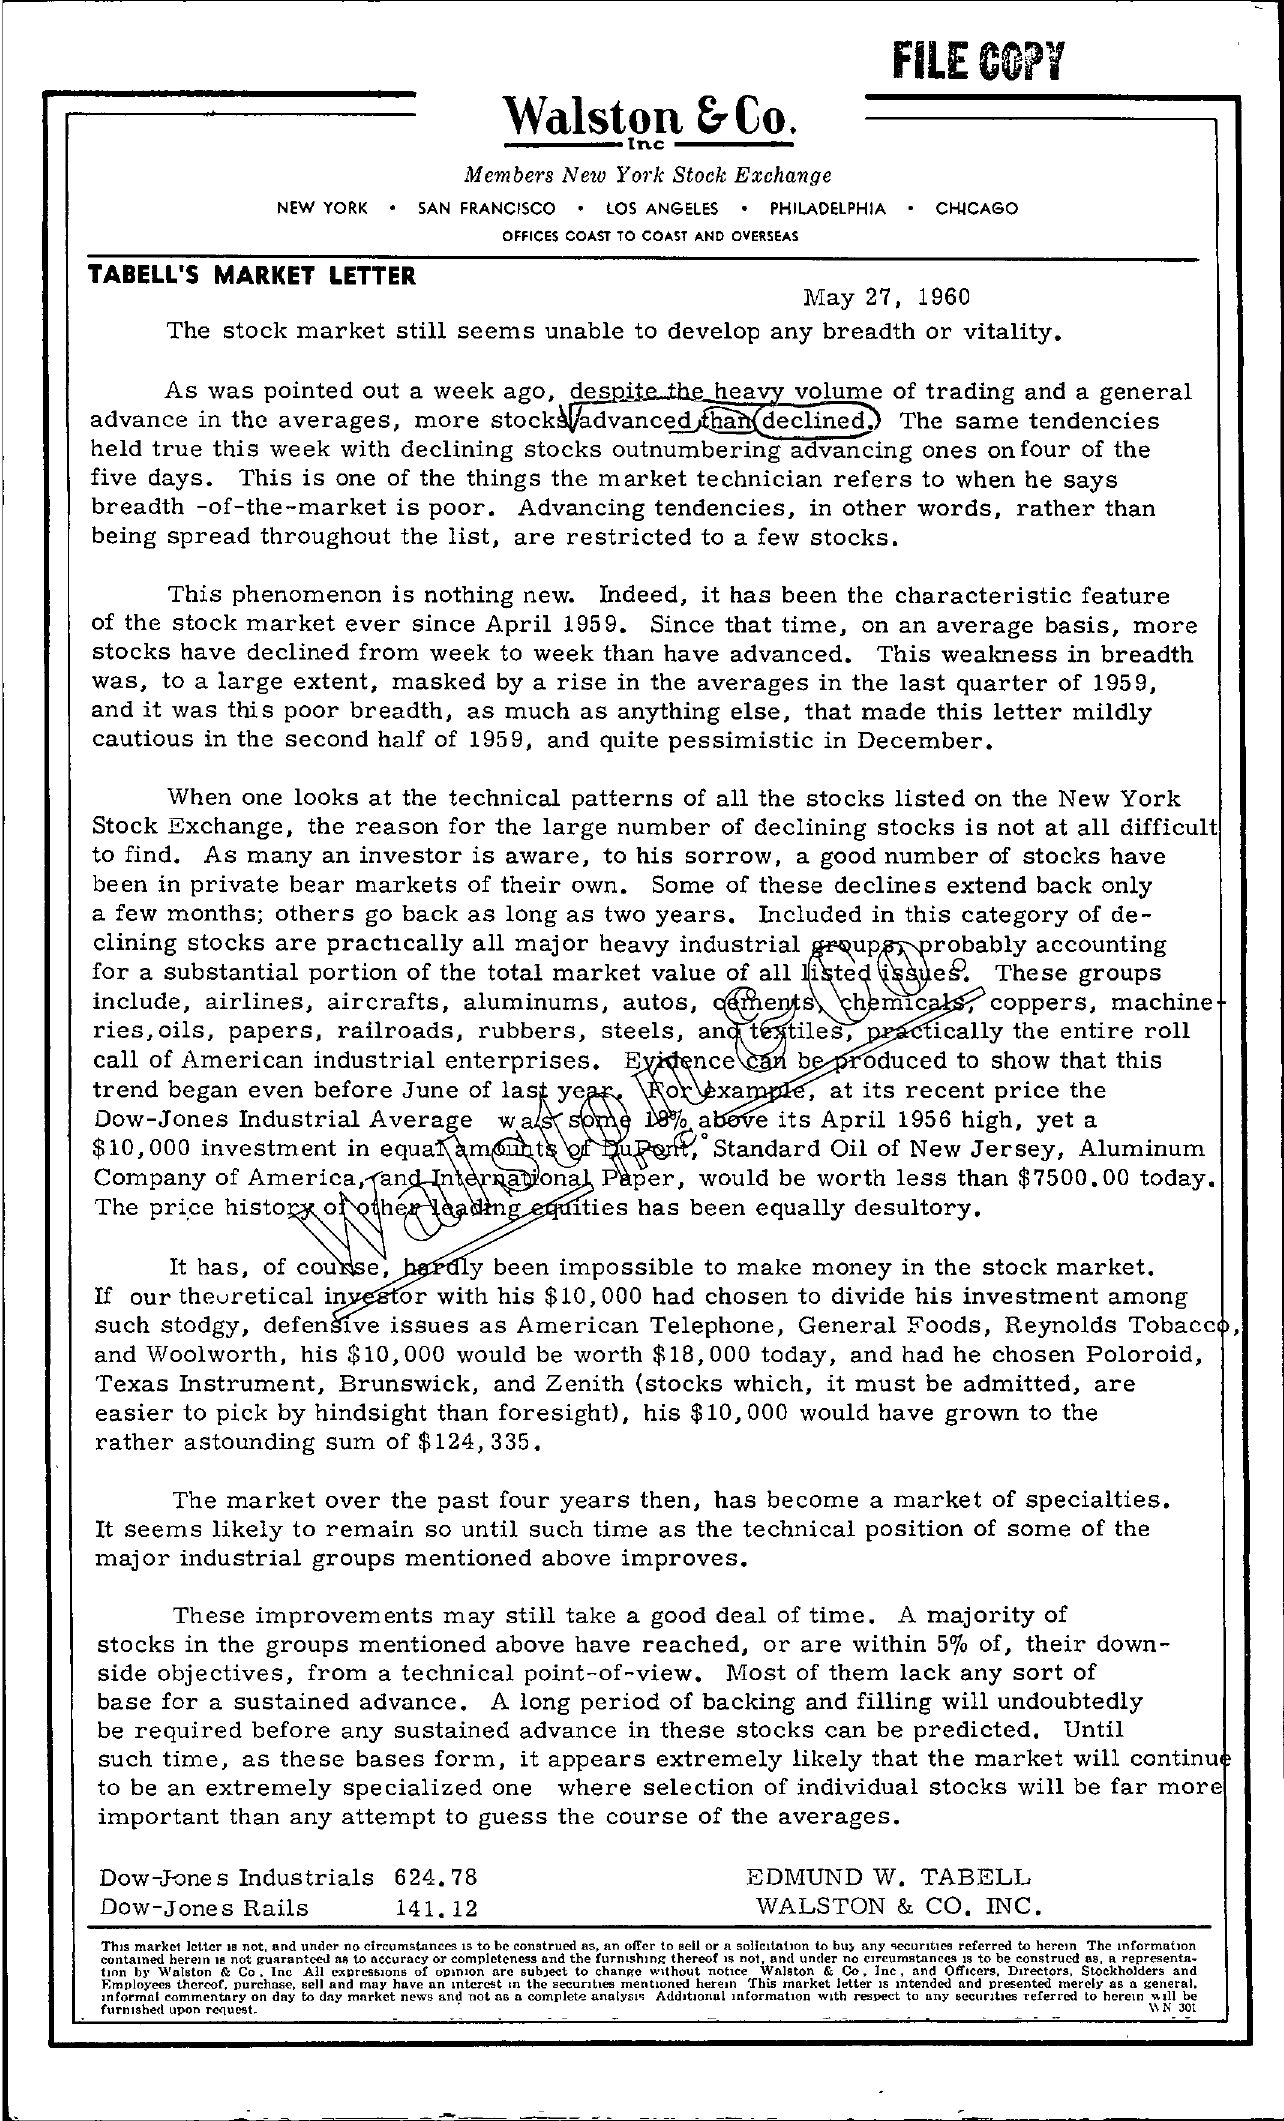 Tabell's Market Letter - May 27, 1960